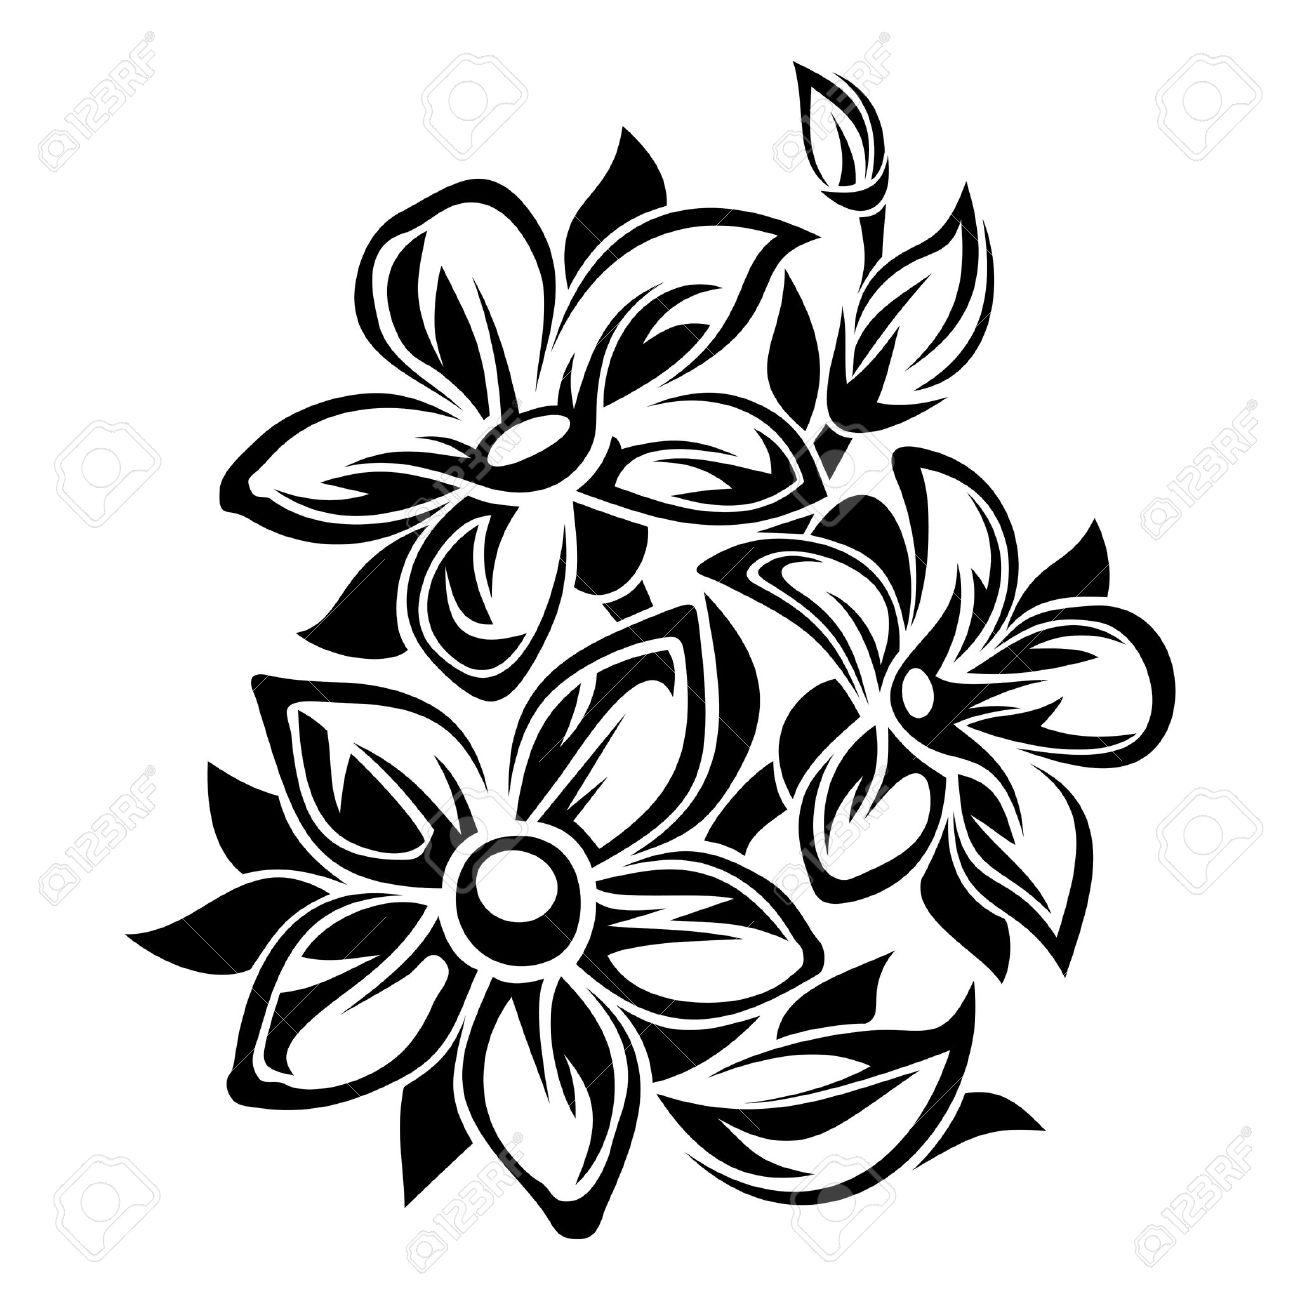 flowers black and white ornament vector stock vector - Black And White Flowers